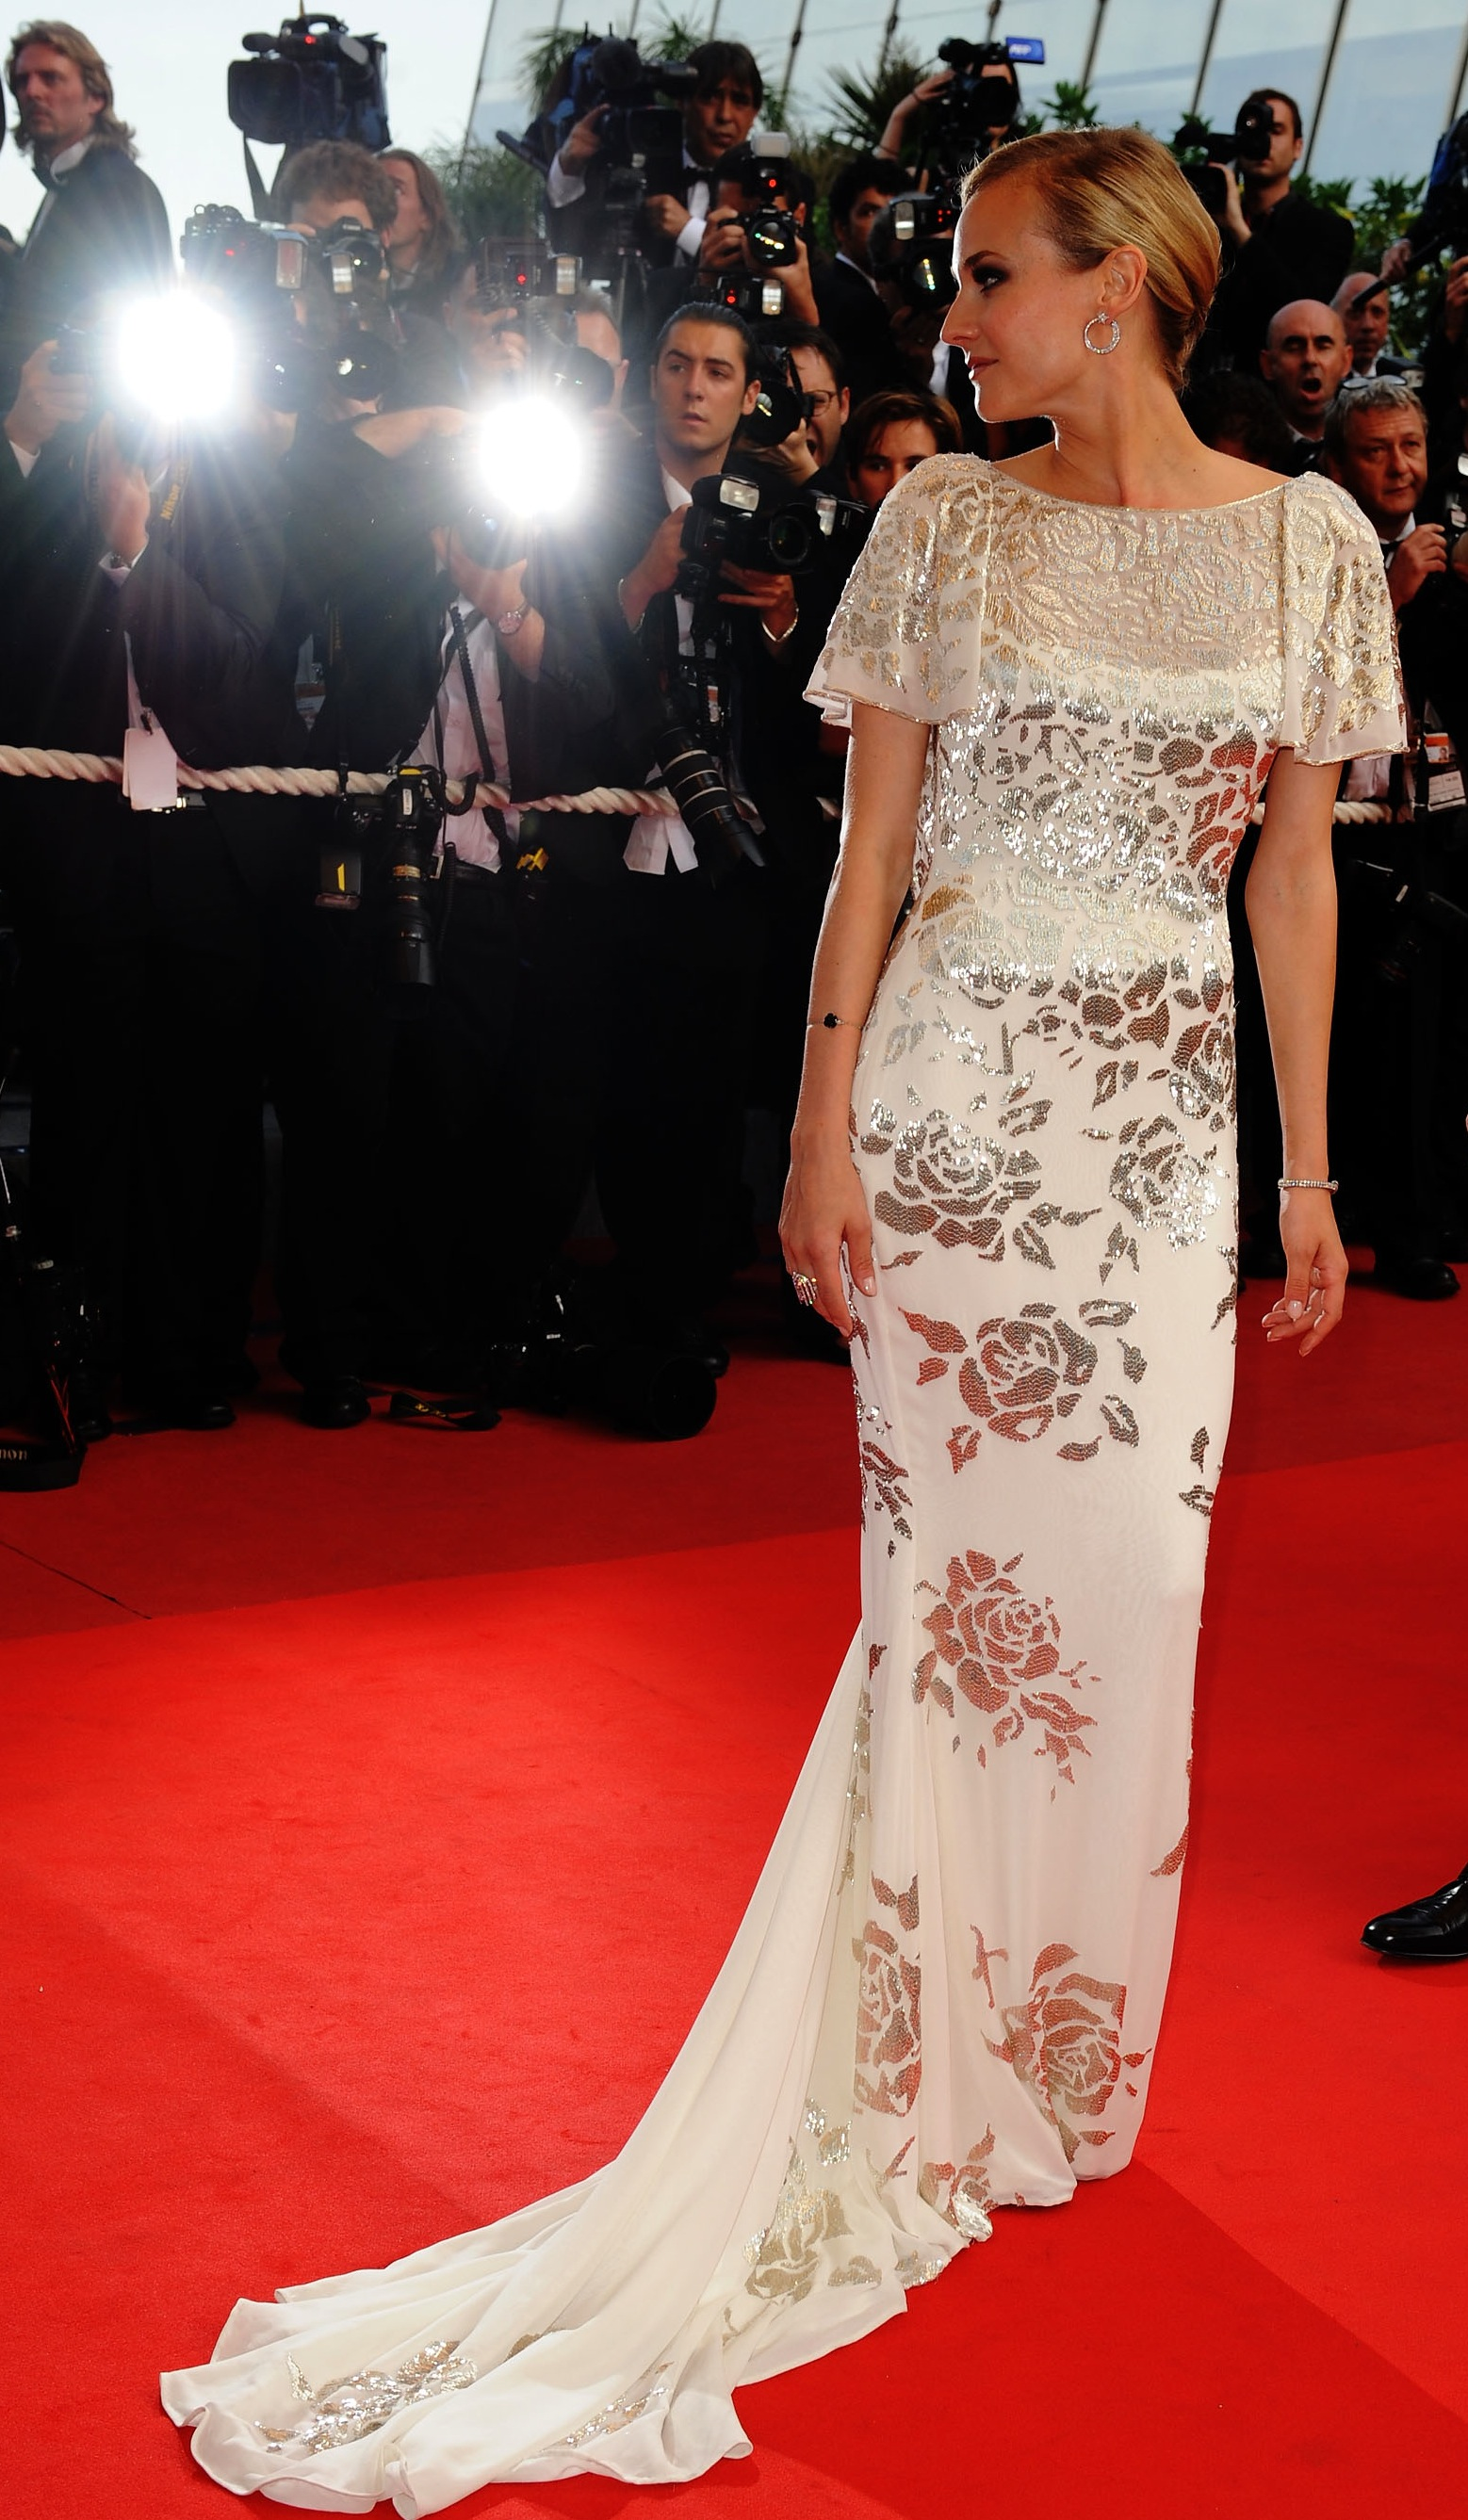 Best of 2009: The Red Carpet Queen of the Year Is . . .